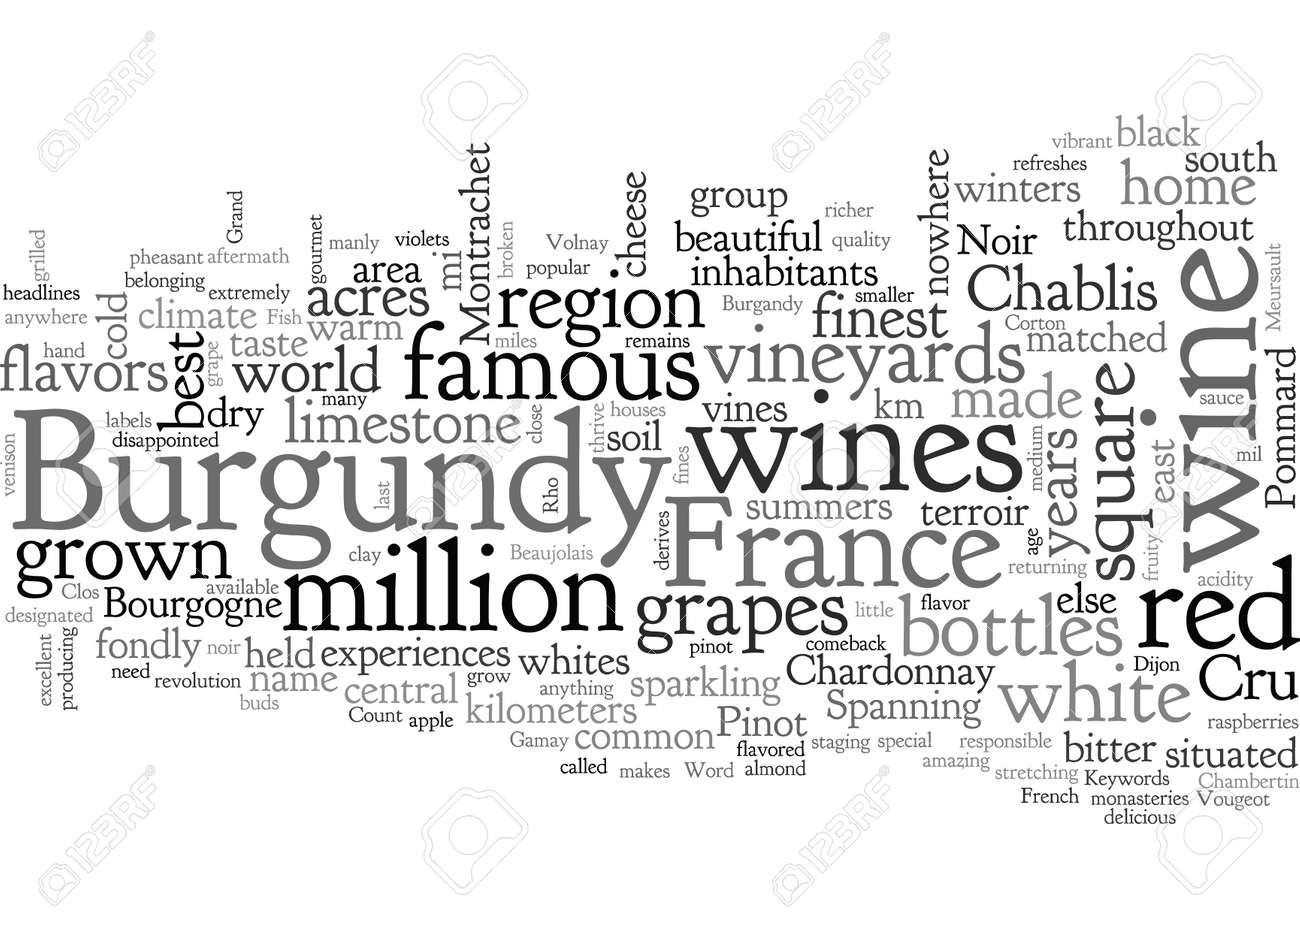 Burgandy France Famous For Its Wines - 132215736